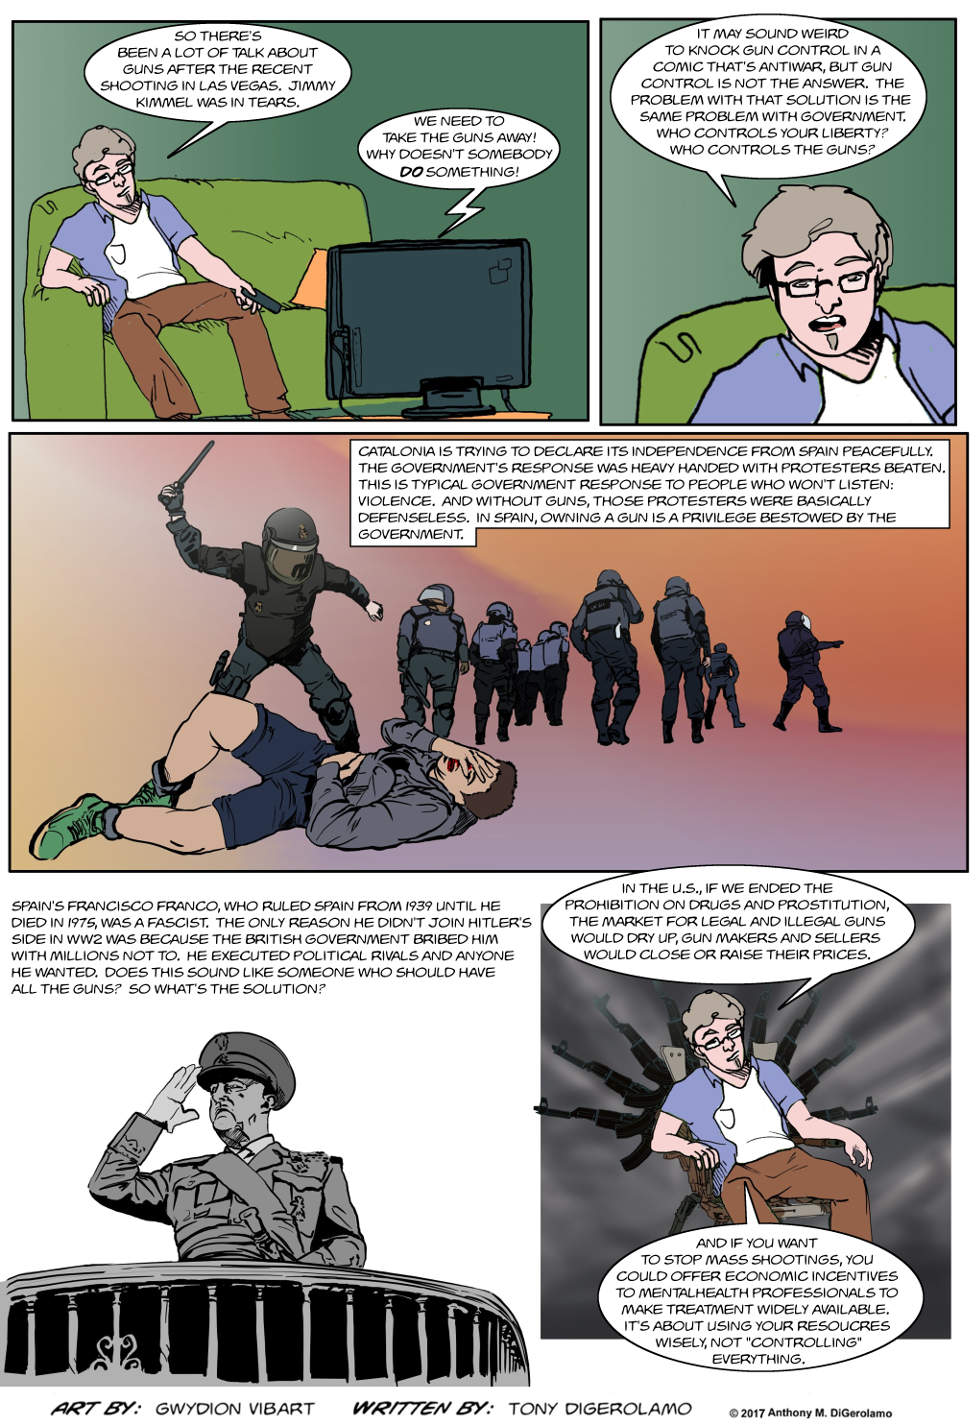 The Antiwar Comic:  Who Controls the Guns?